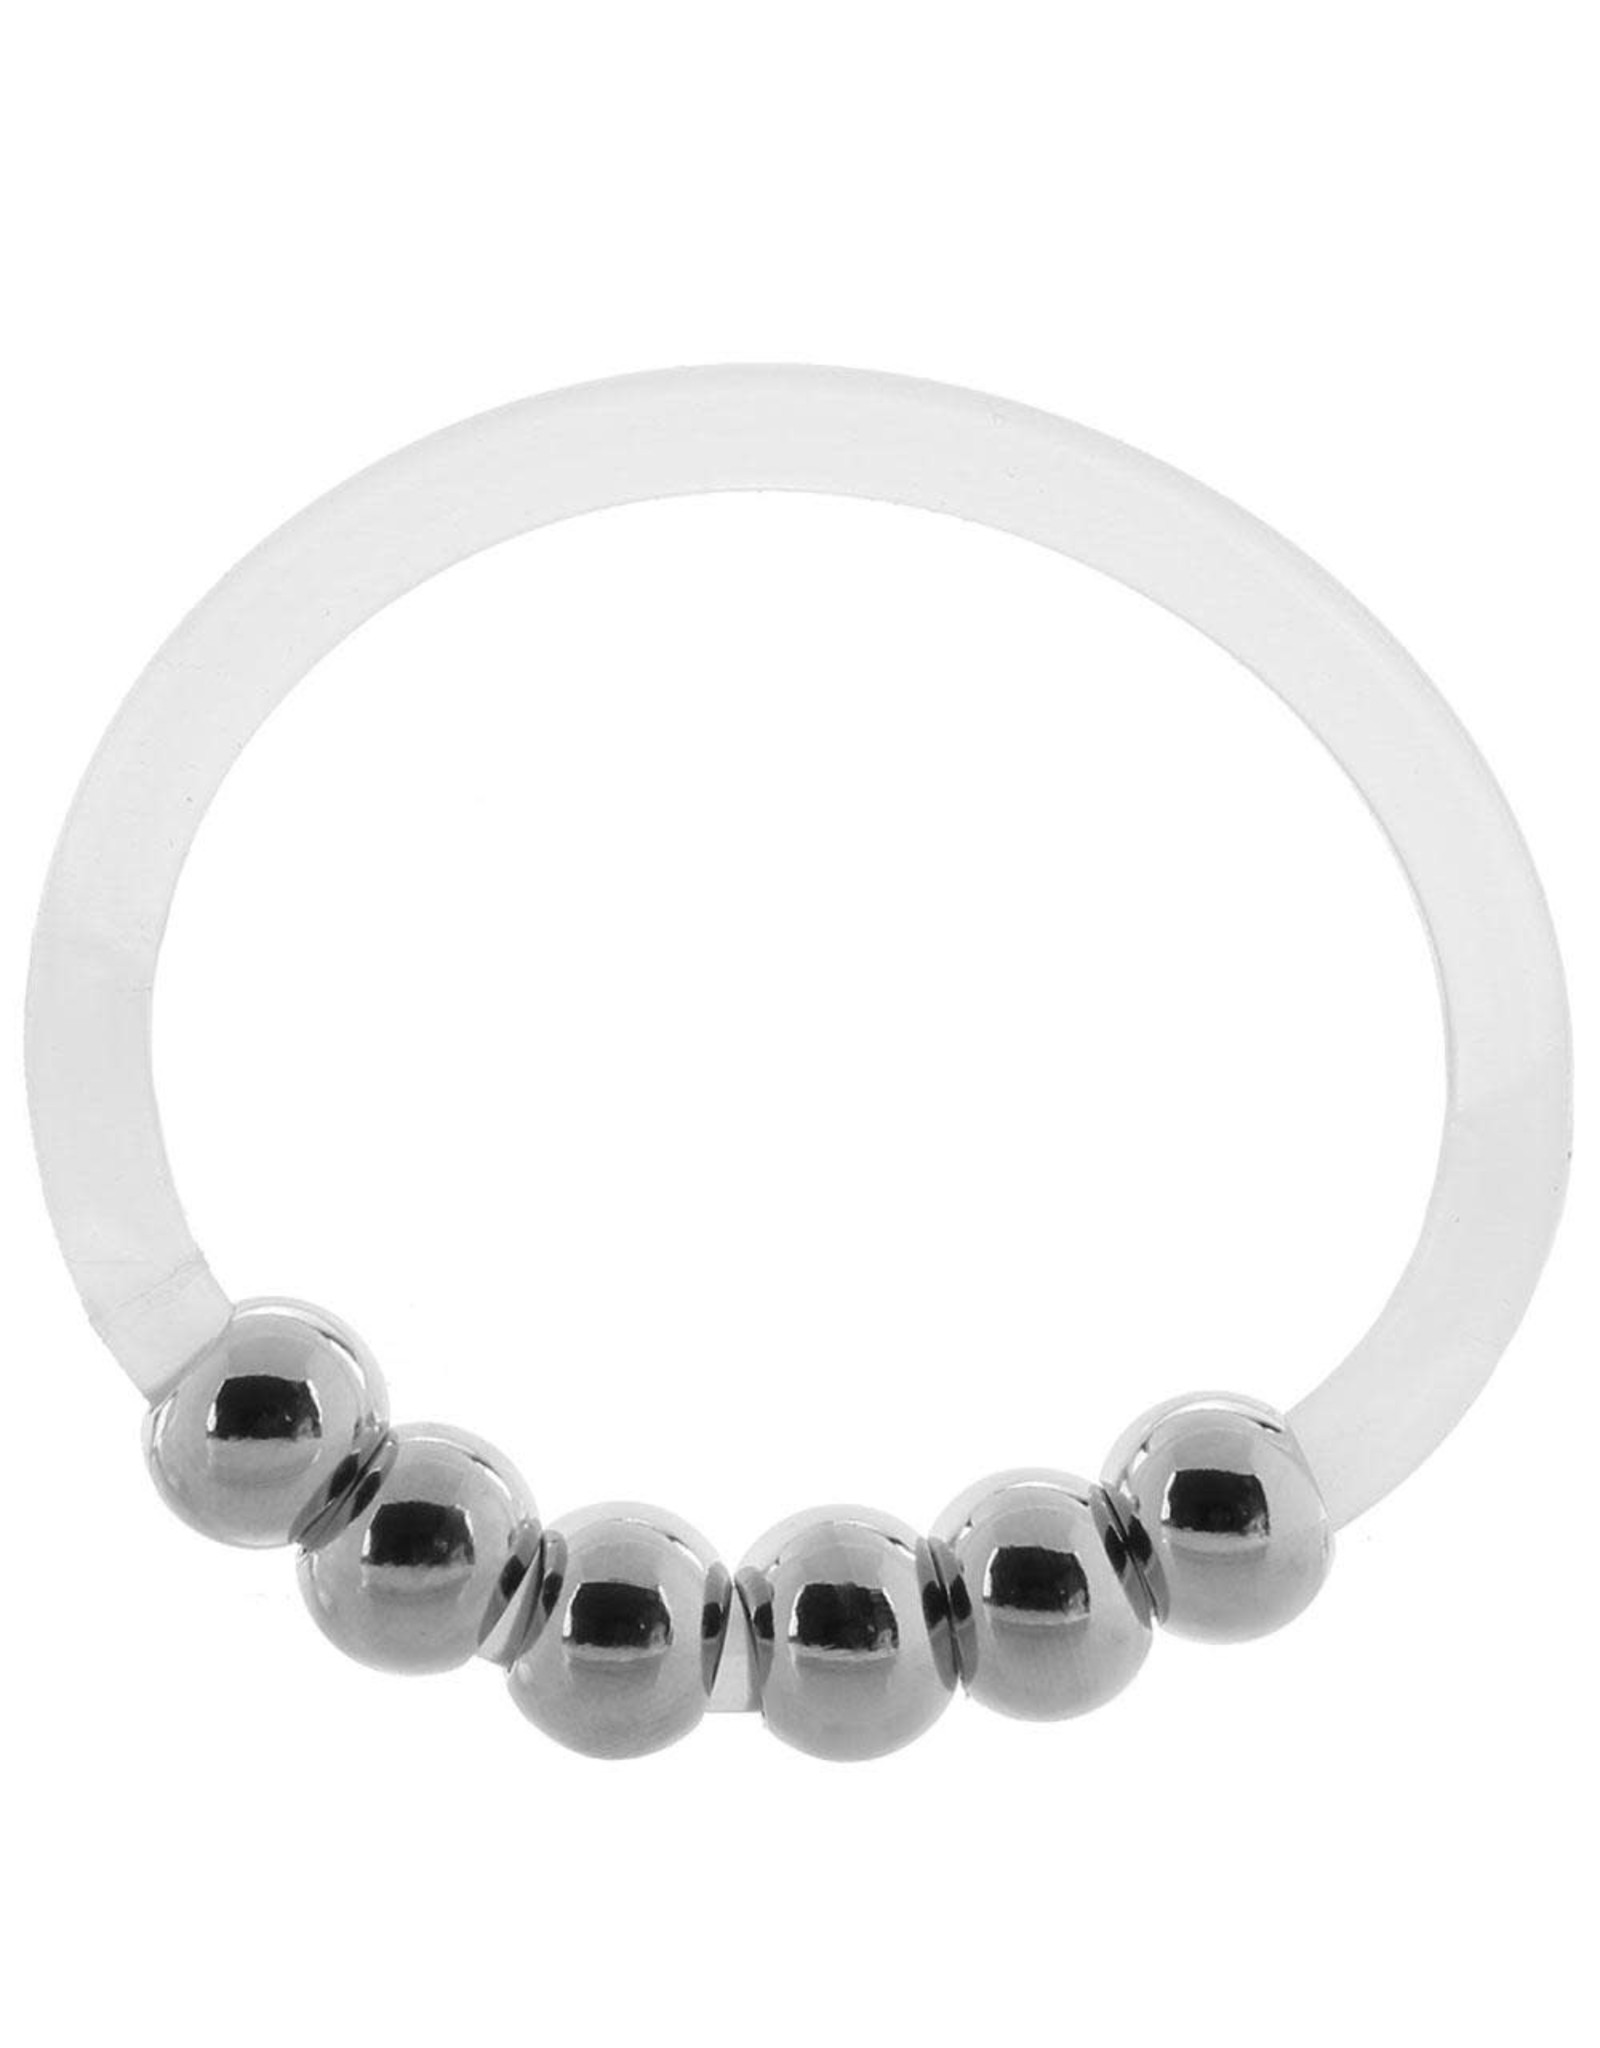 CALEXOTICS - STEEL BEADED SILICONE COCK RING - X-LARGE